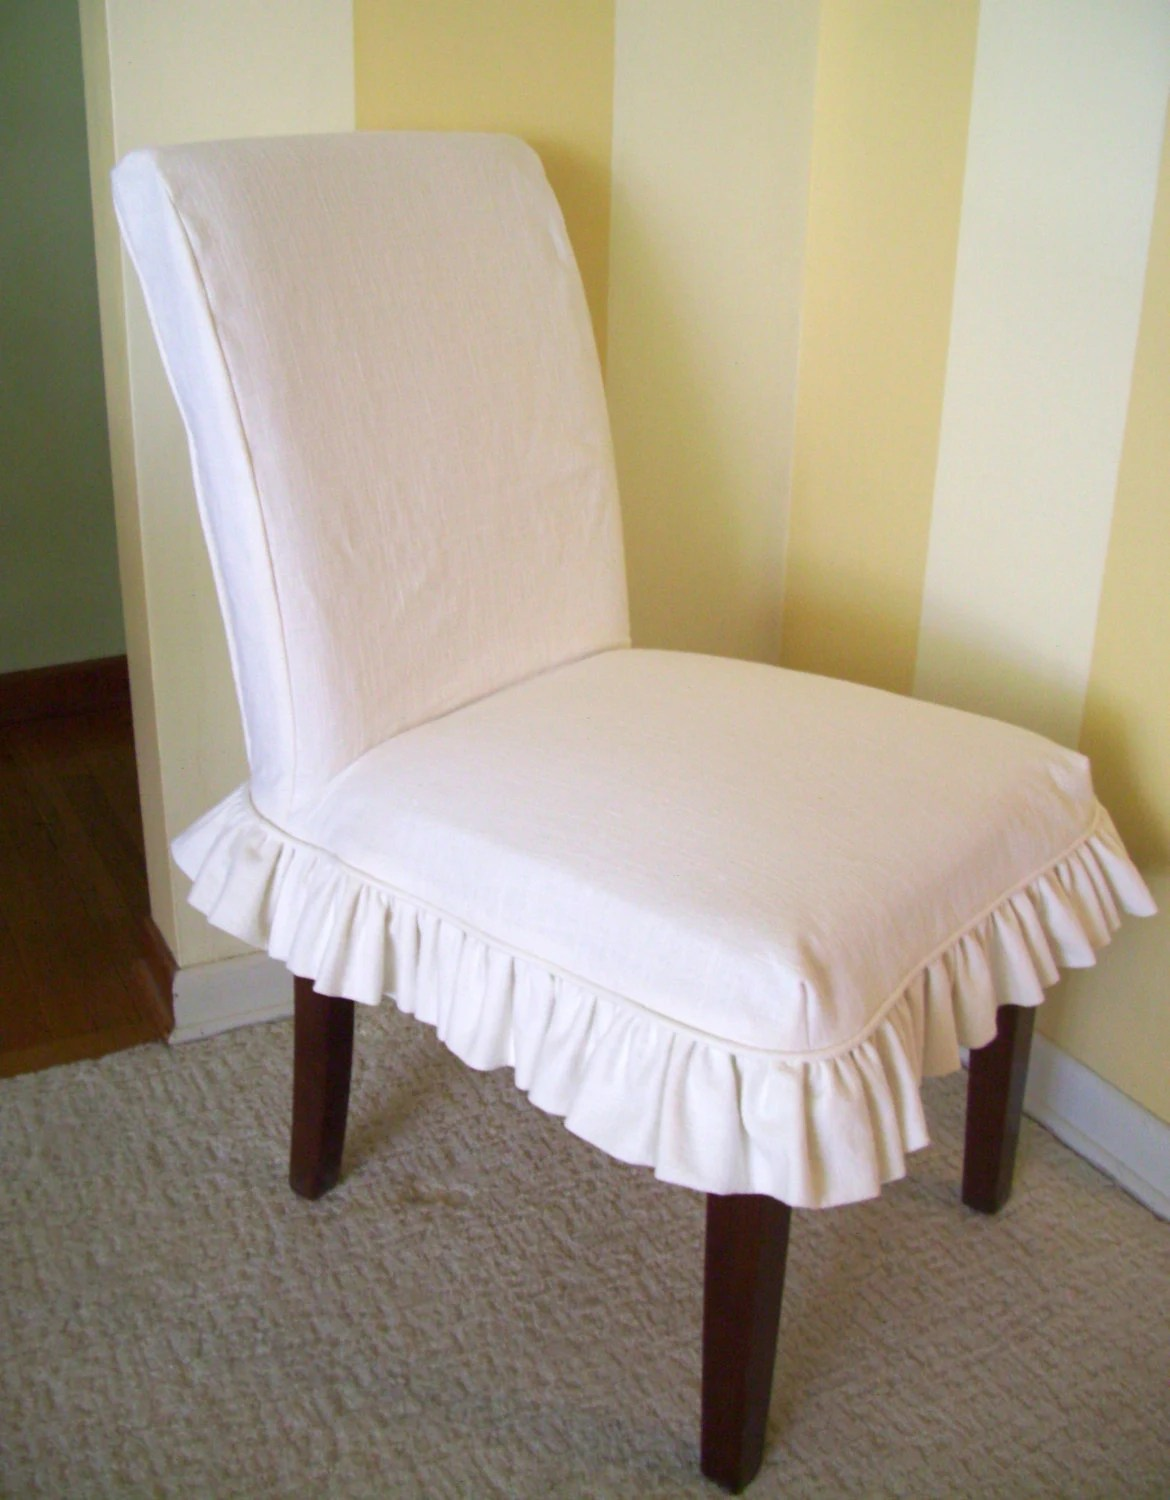 Slip Cover Chairs Linen Parsons Chair Slipcover Ruffled Skirt Dining Chair